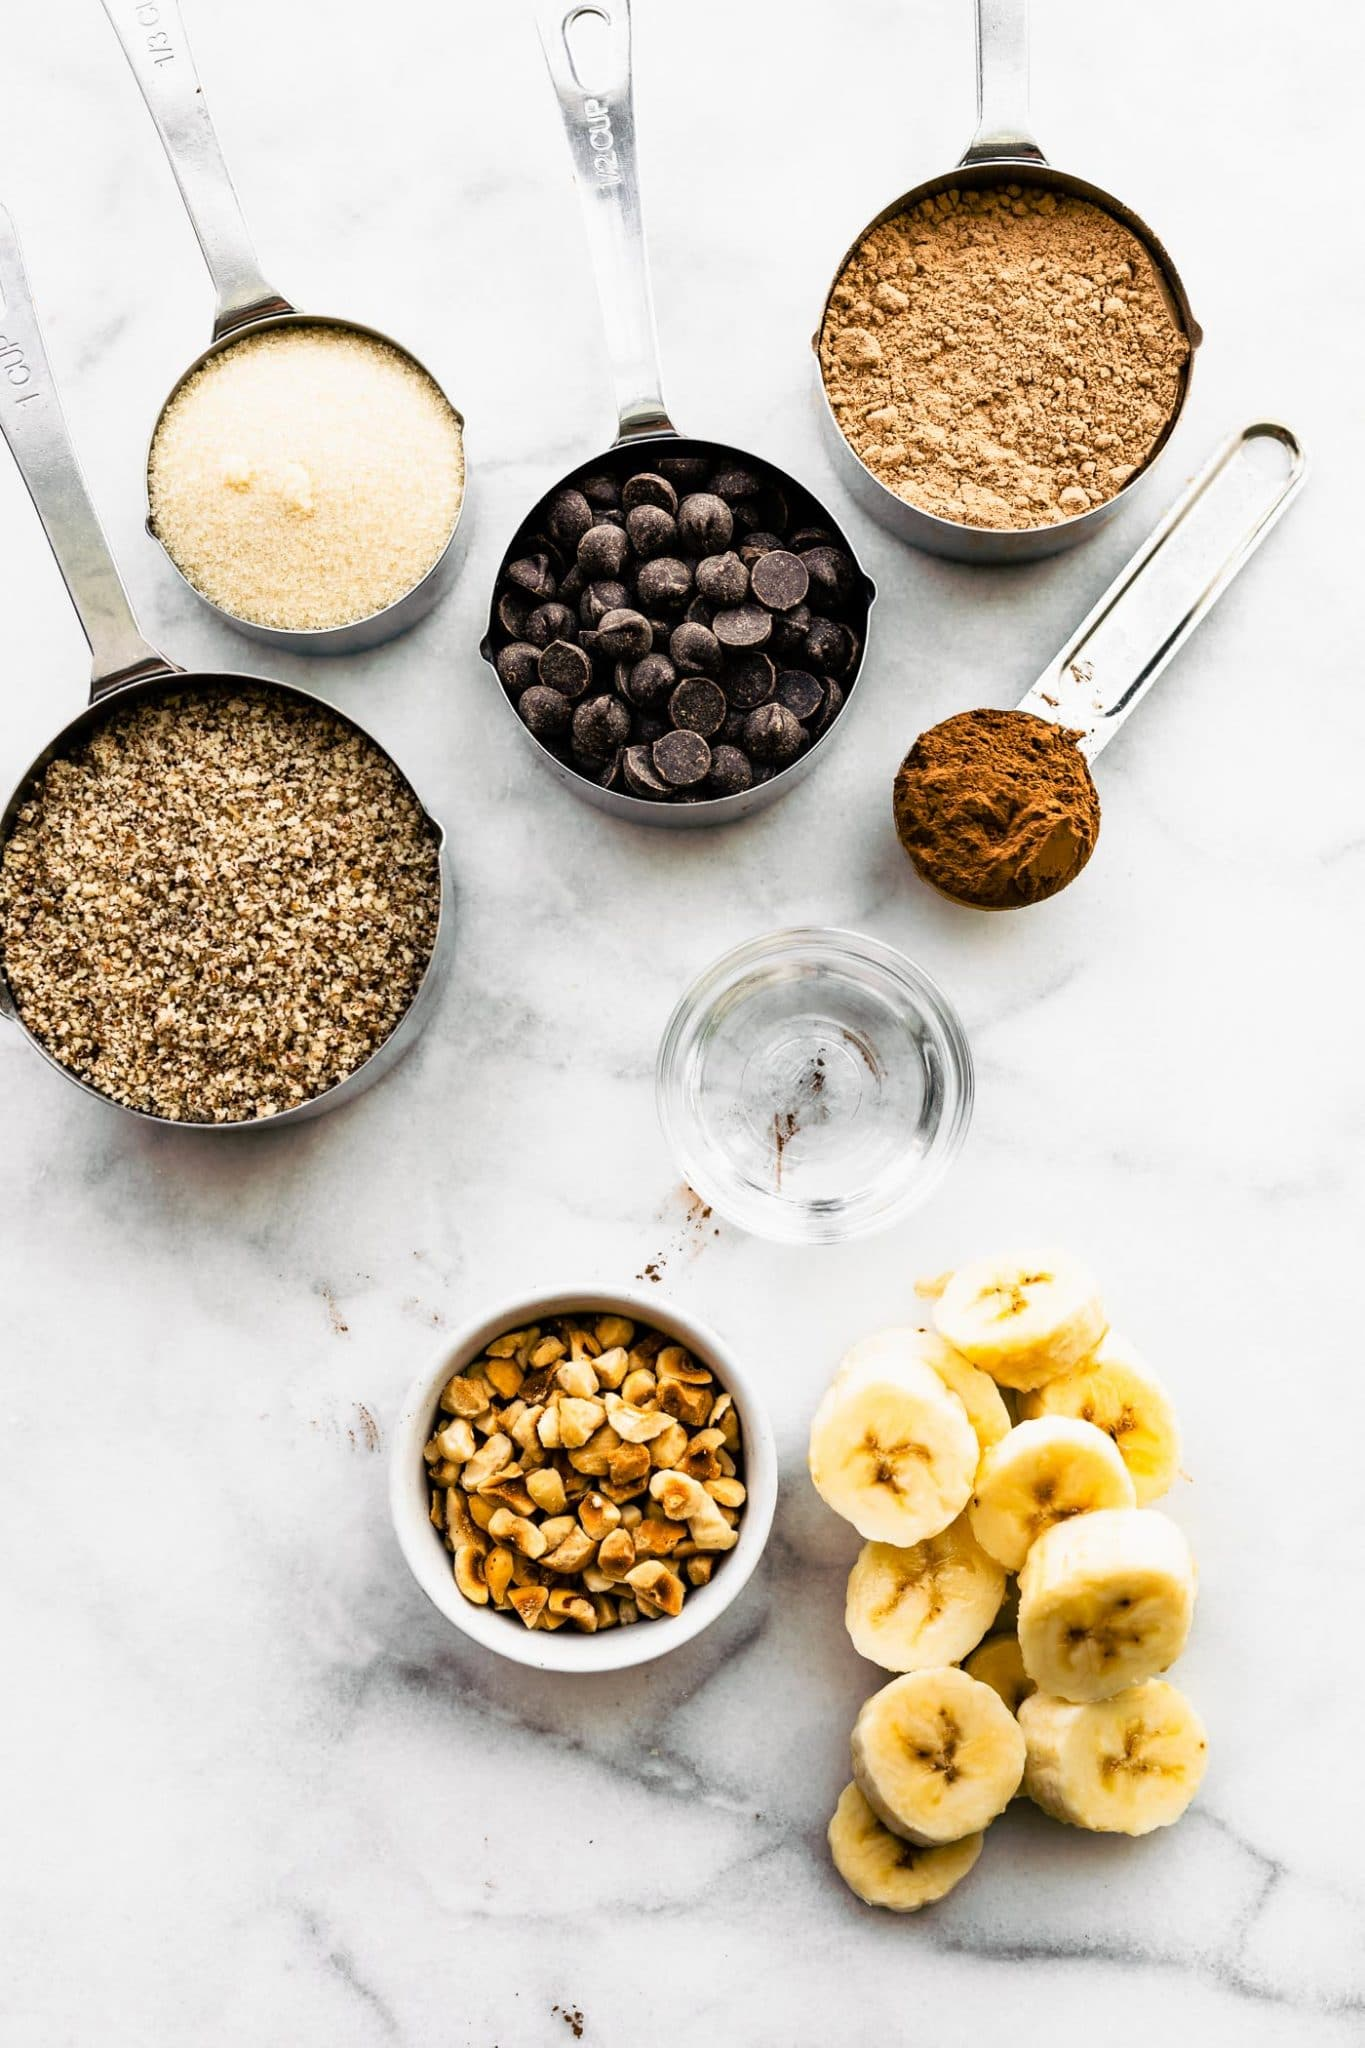 Overhead image of ingredients for protein banana chocolate cookies.